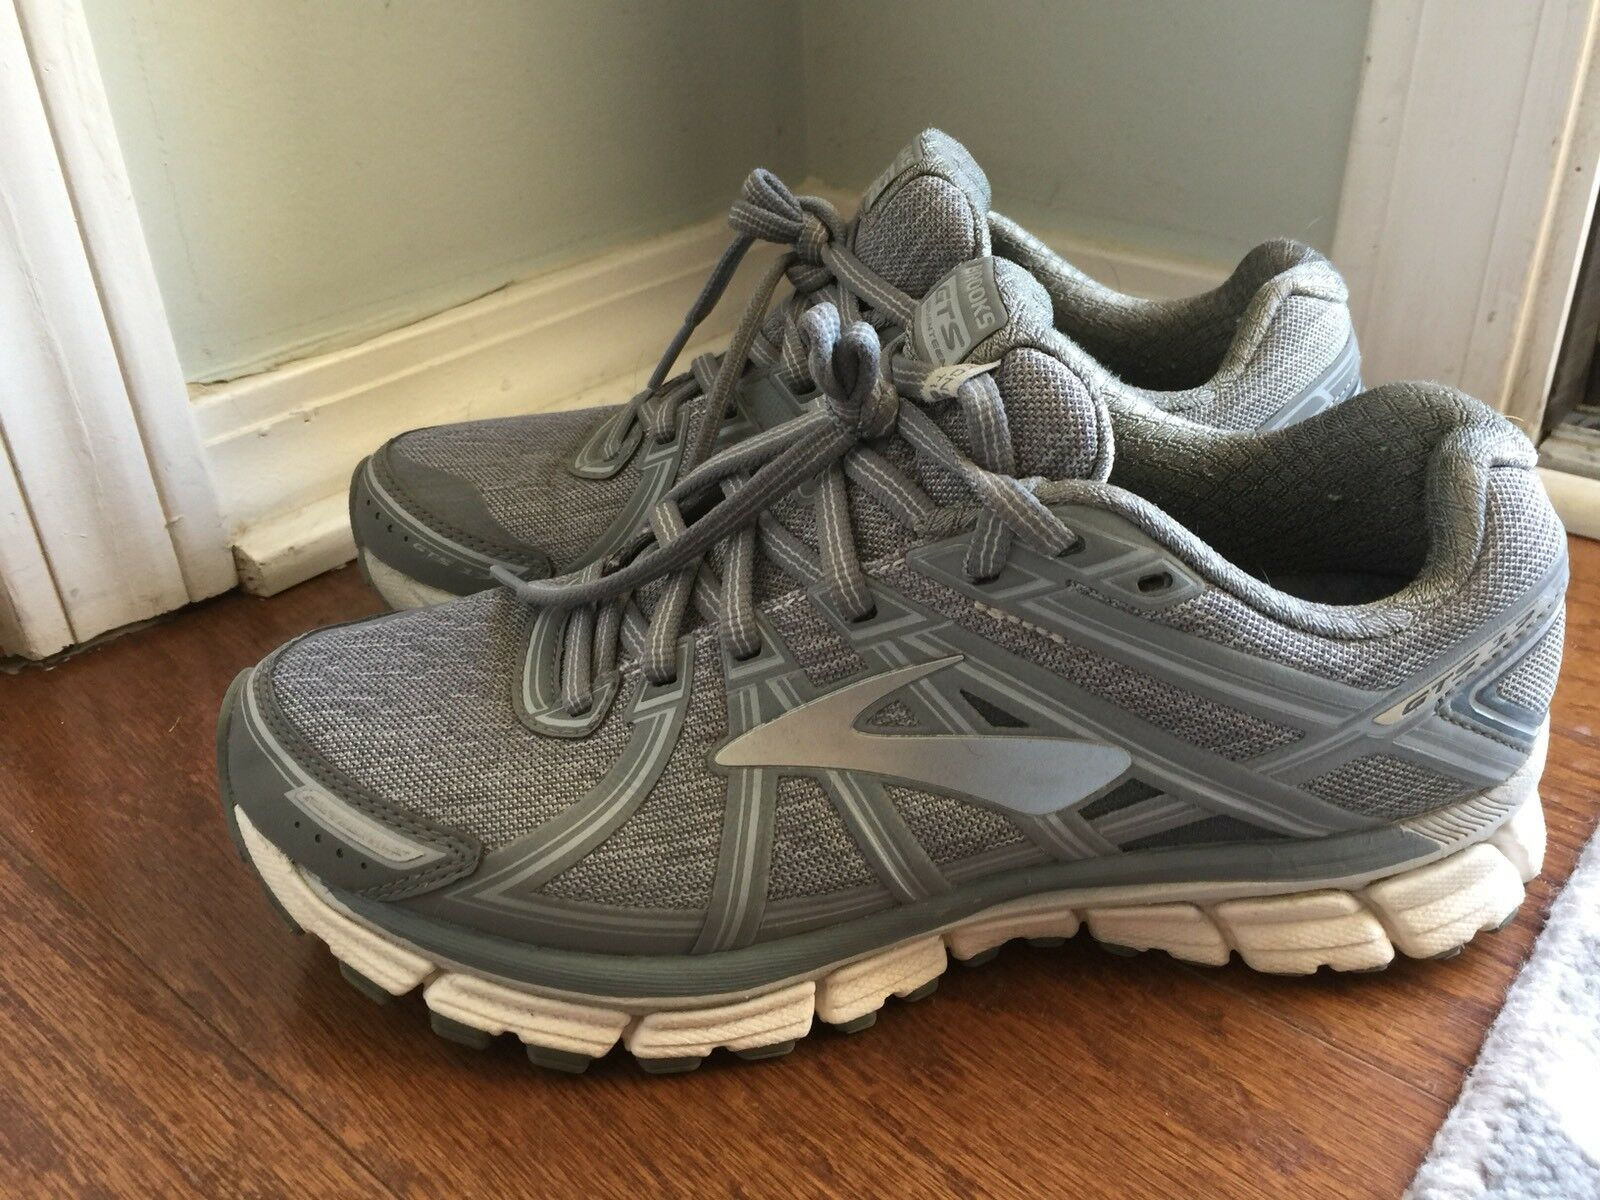 Pre-Owned Women's Brooks Adrenaline GTS 17 - 8 8 8 - Grey af6d2c